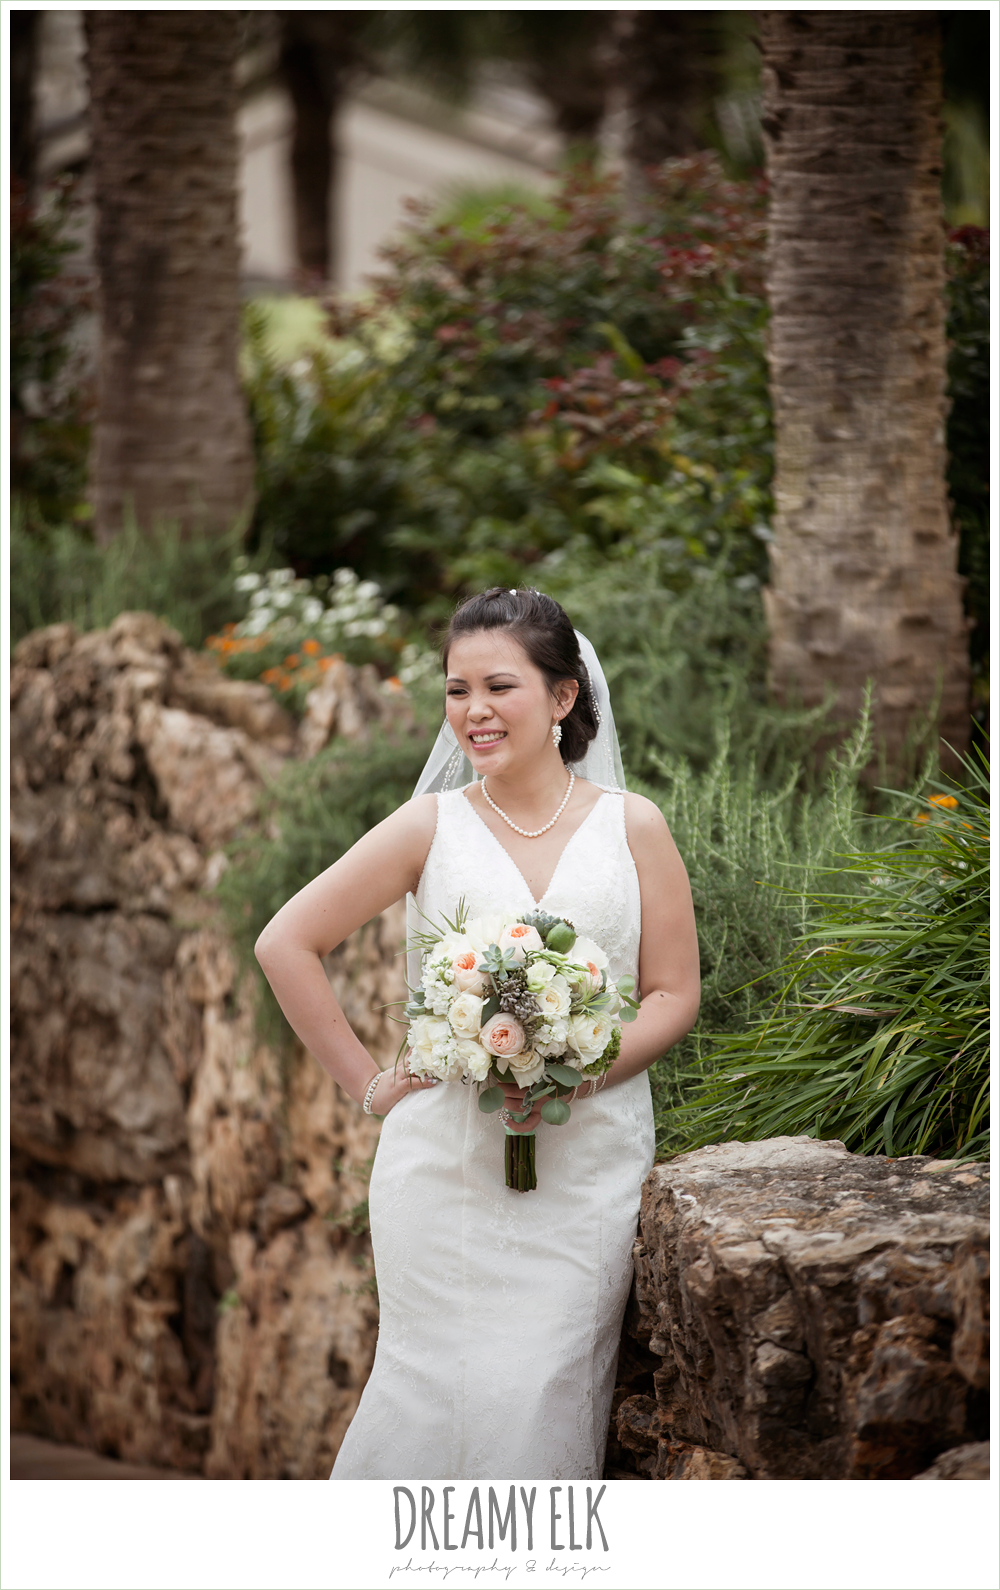 bridal portrait, lace two shouldered wedding dress, nautical theme wedding, magpie blossom boutique, horseshoe bay resort, photo {dreamy elk photography and design}